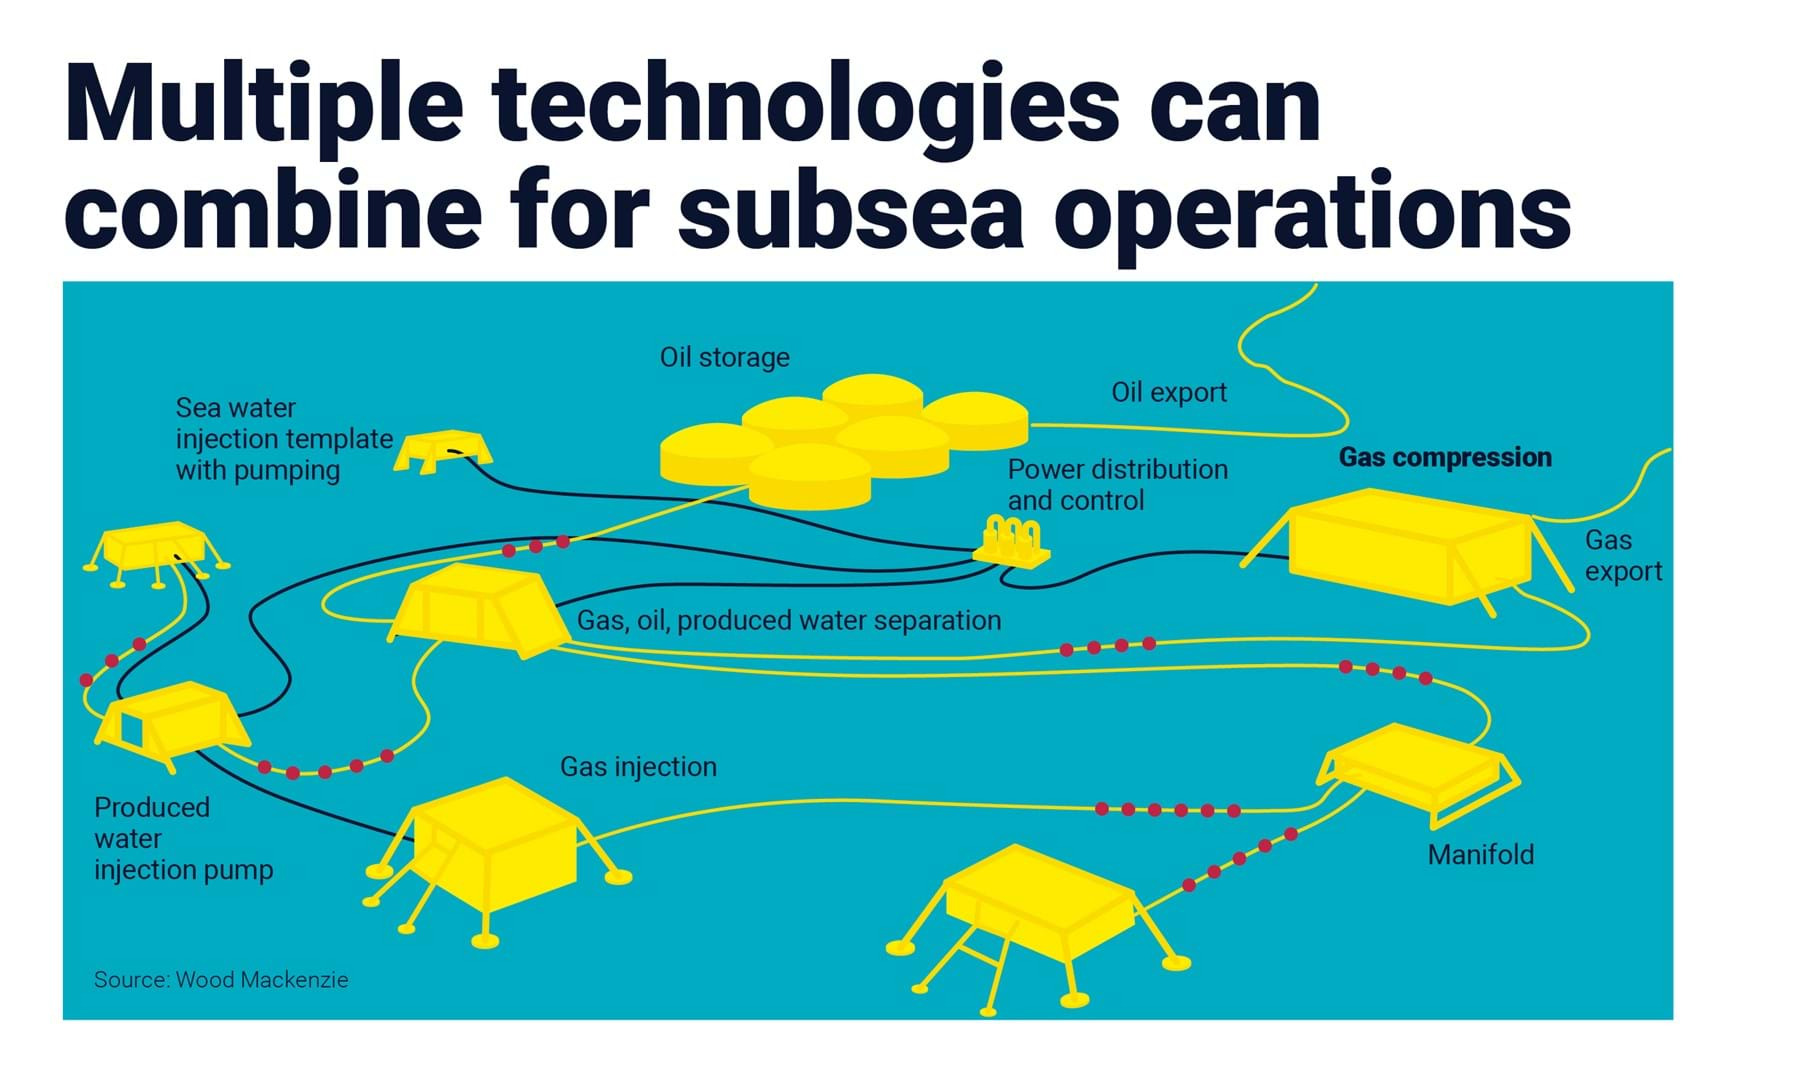 Multiple technologies can combine for subsea operations